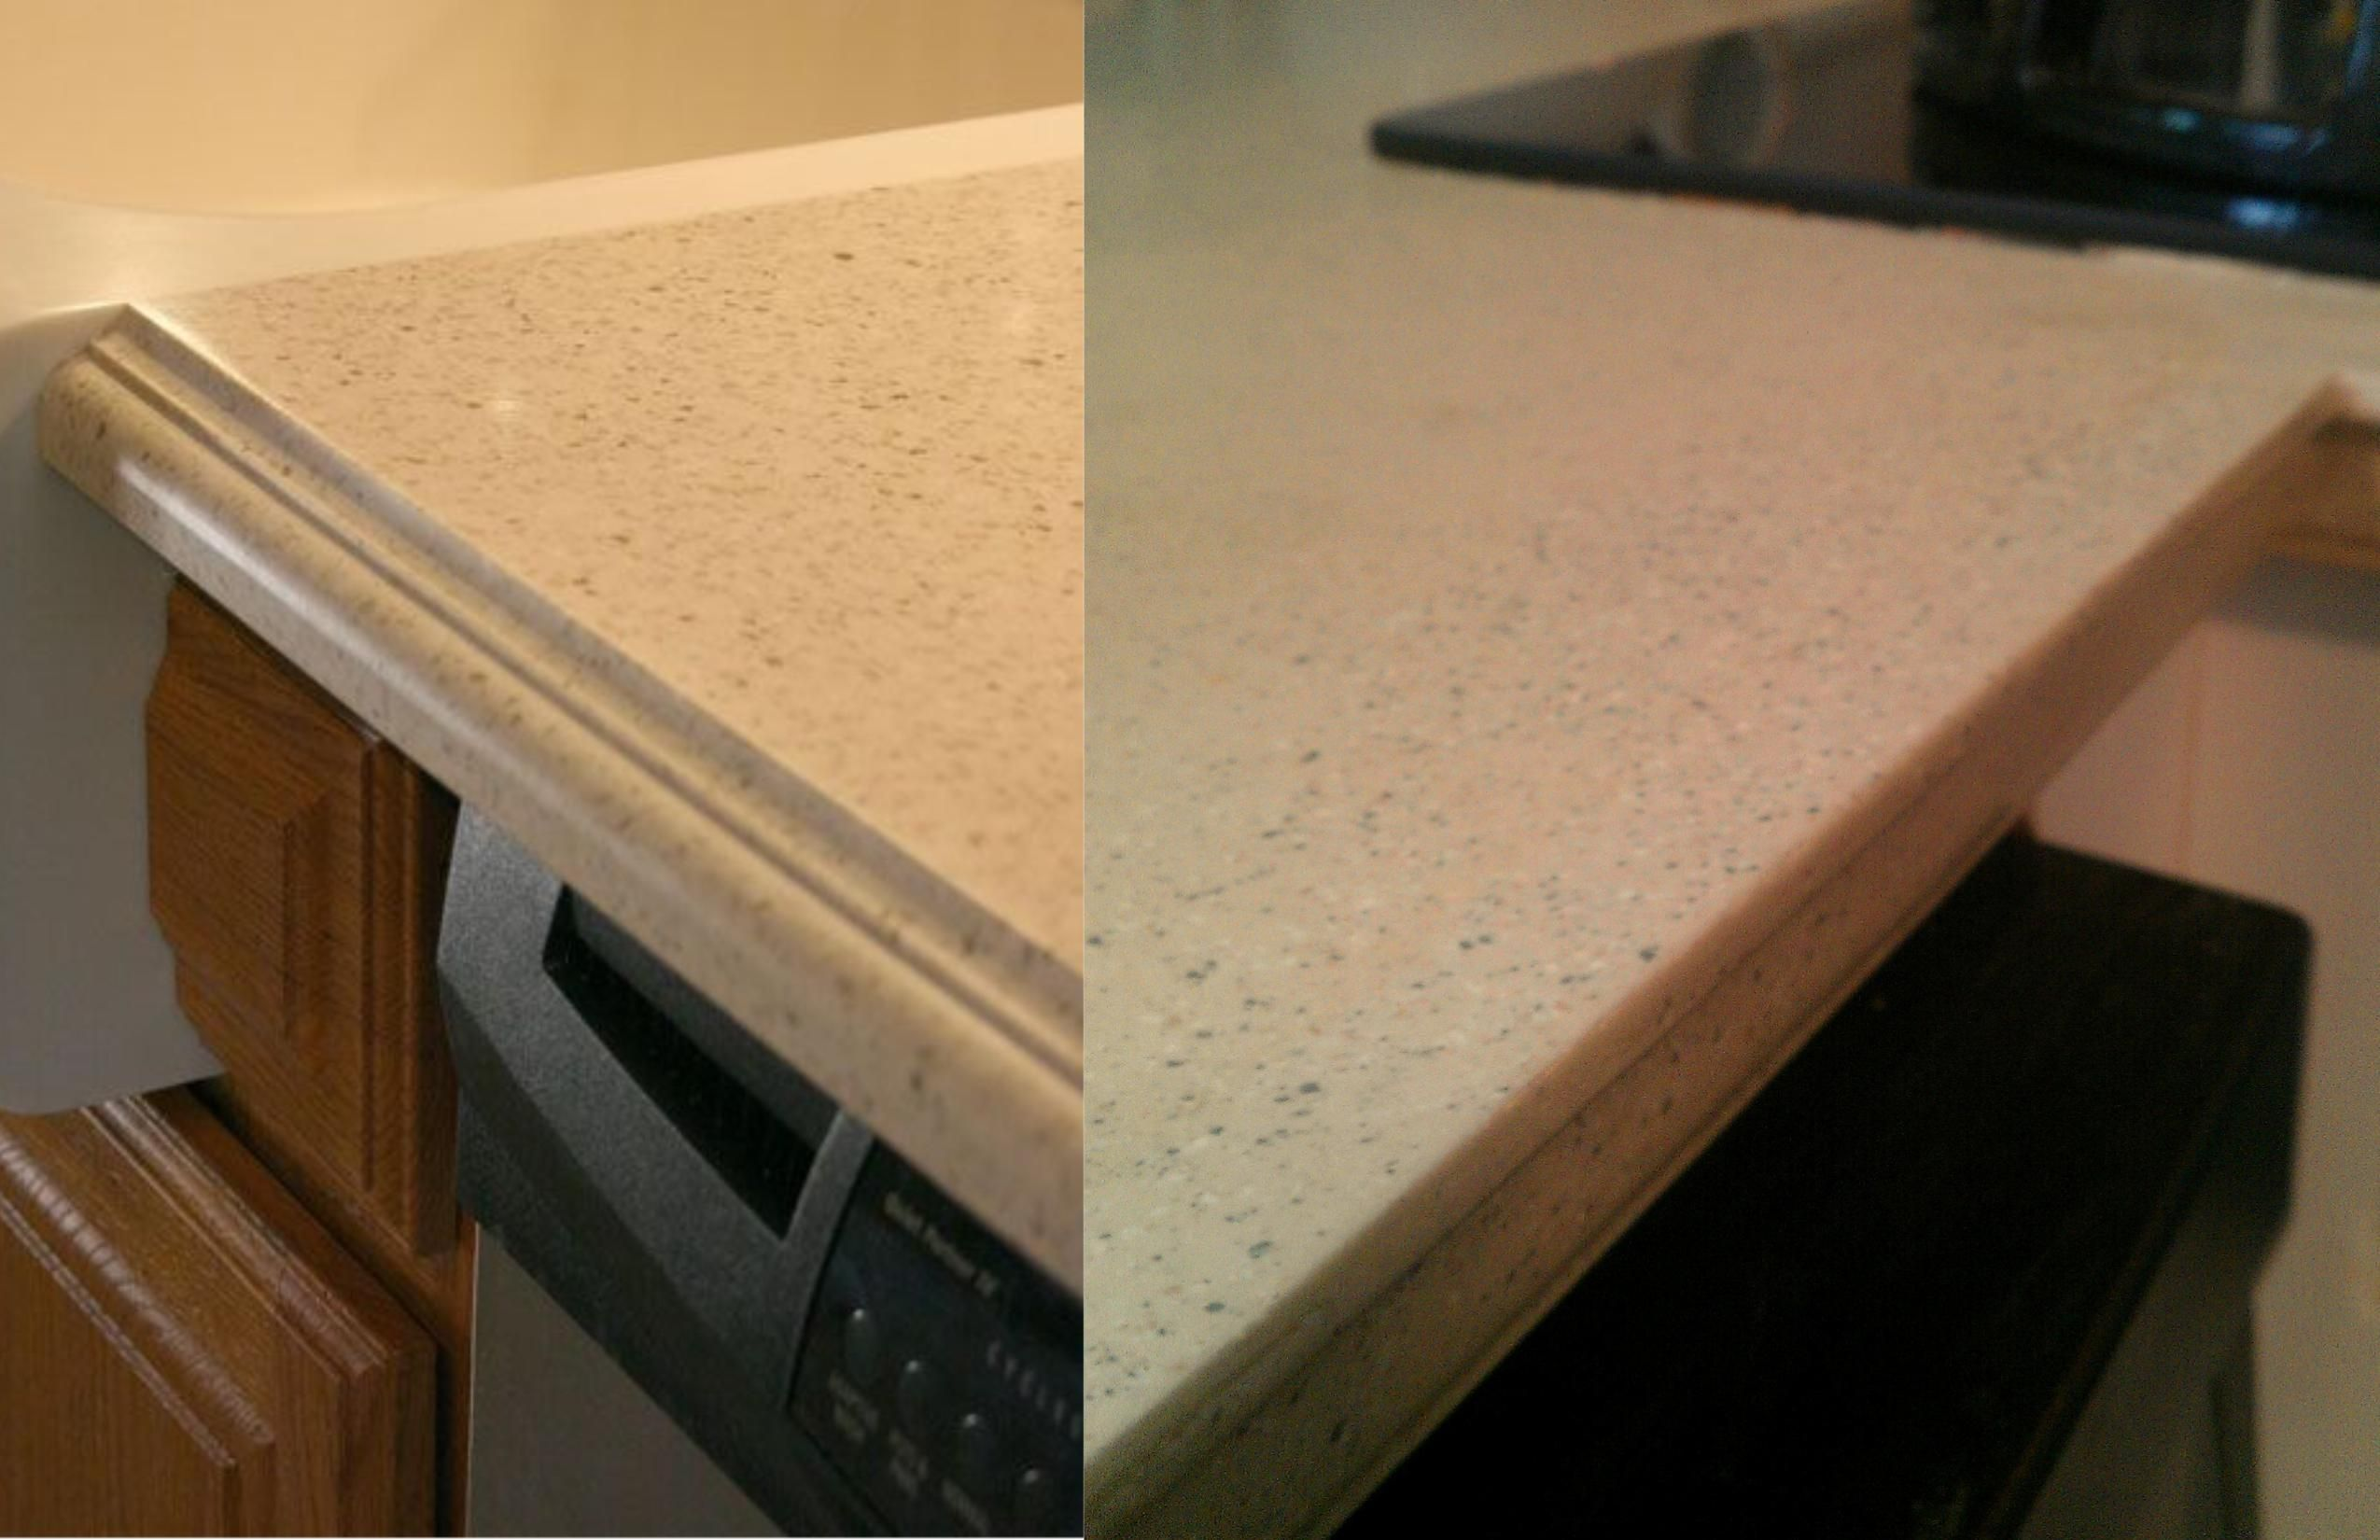 Countertop Coating : of these countertops is Corian, the other is Daich Coatings Countertop ...